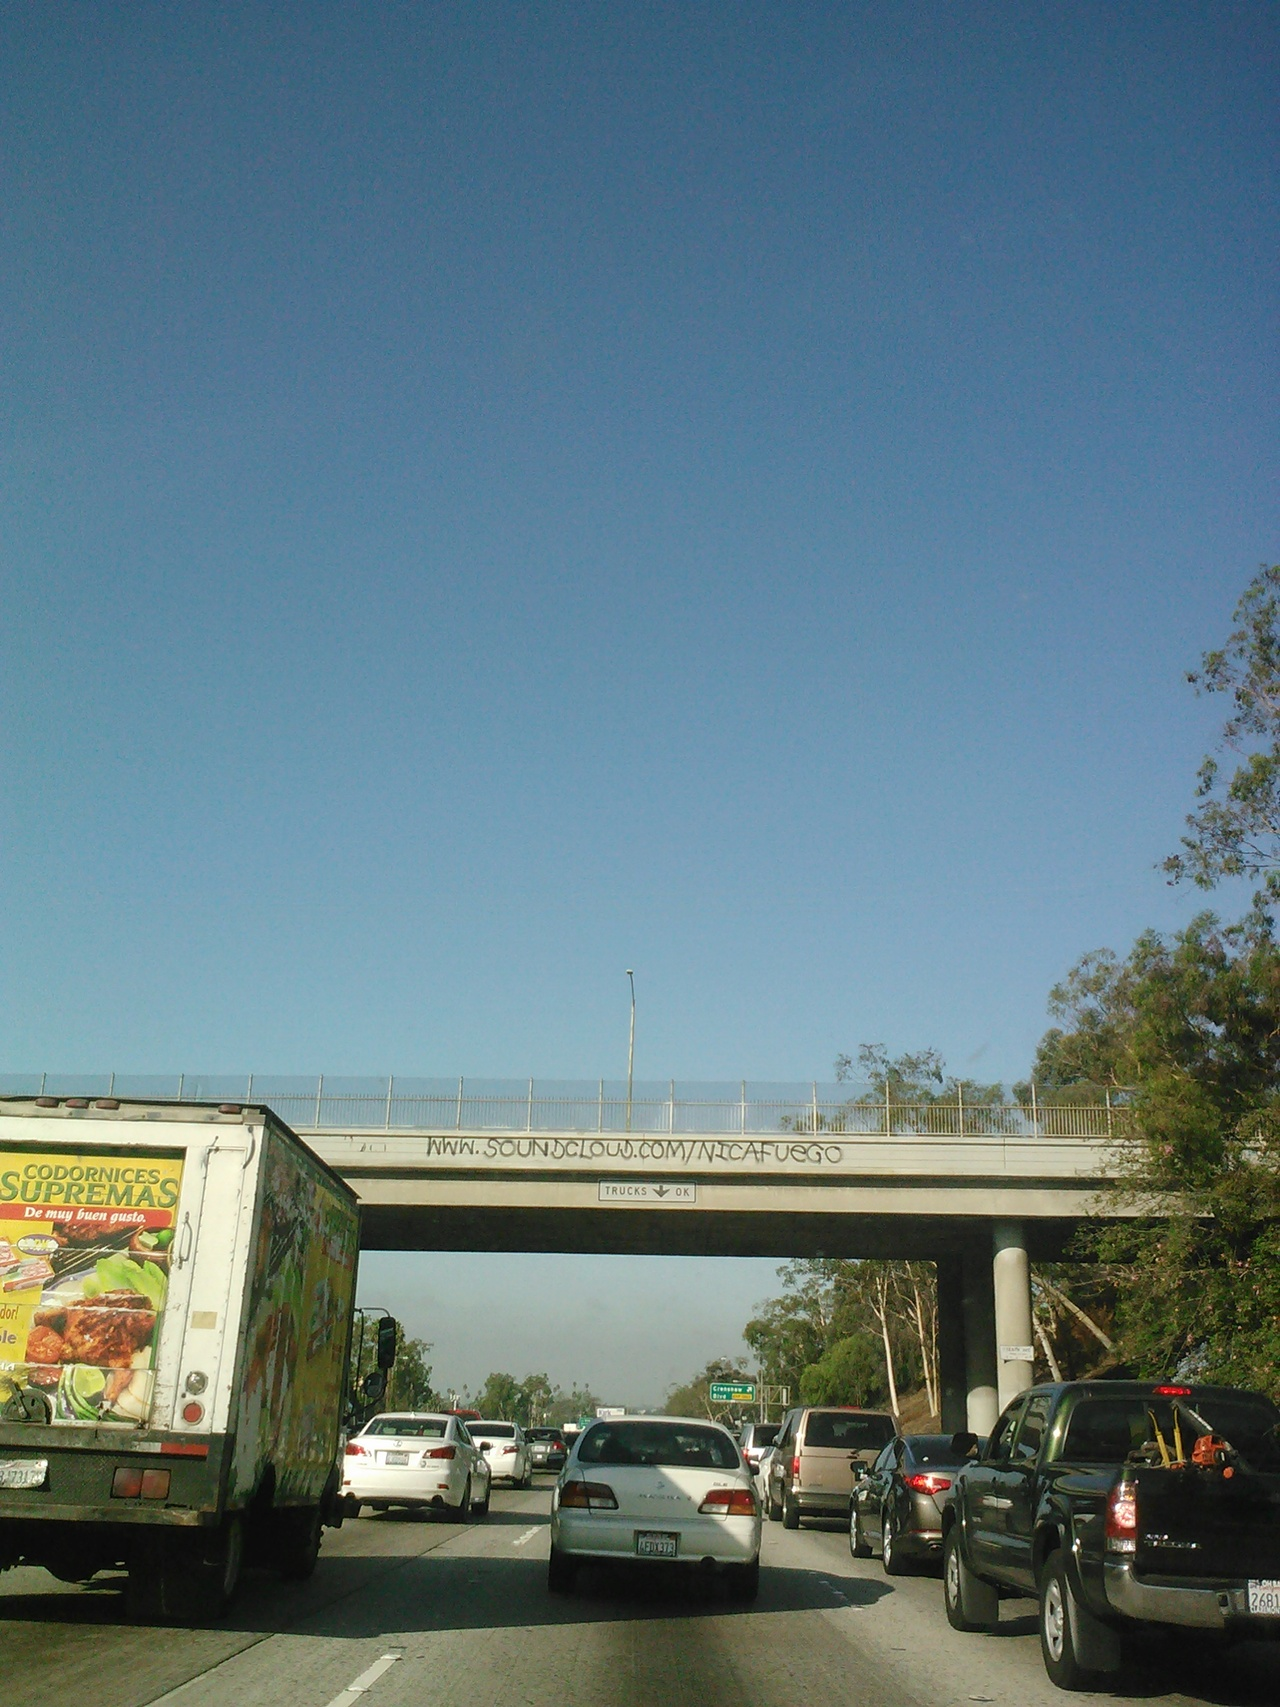 dj competition is getting very real in LA. tagging bridges on the 405 with a soundcloud page is kind of genius.